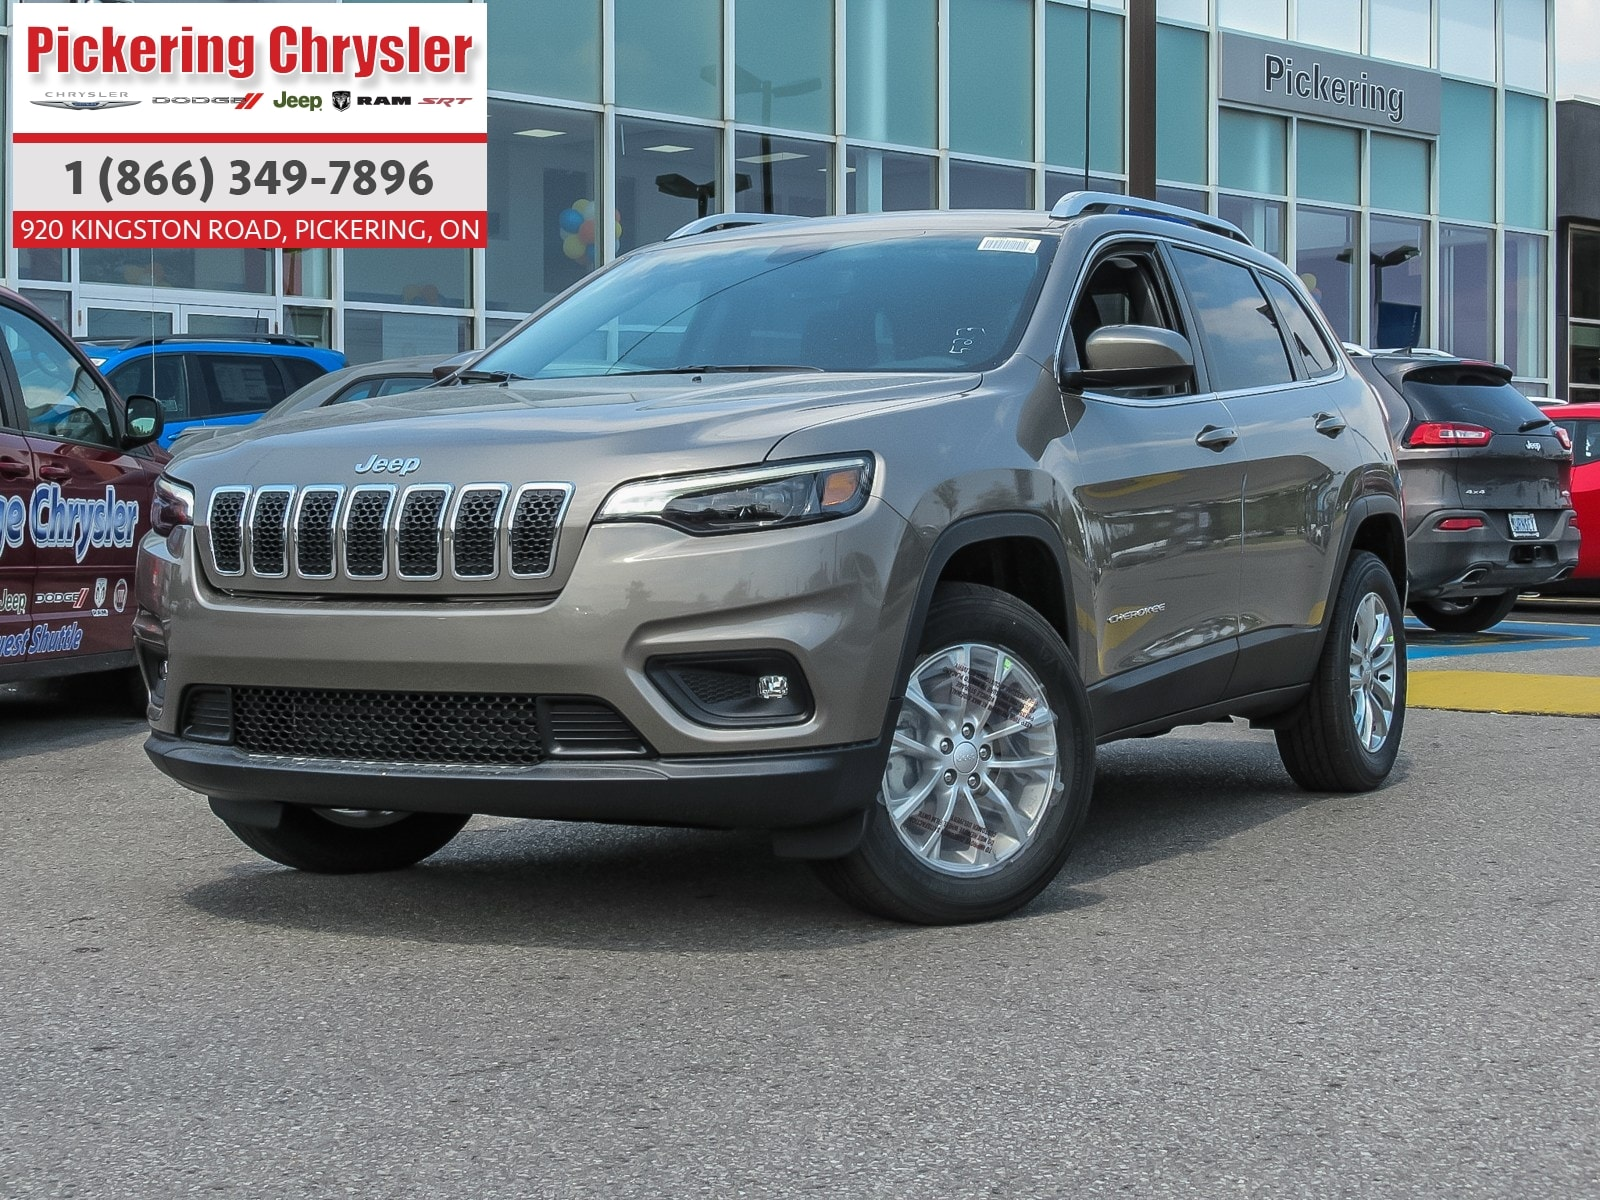 2019 Jeep New Cherokee 4X4 H-TED SEATS ALLOY WHEELS PUSH START REMOTE STA VUS